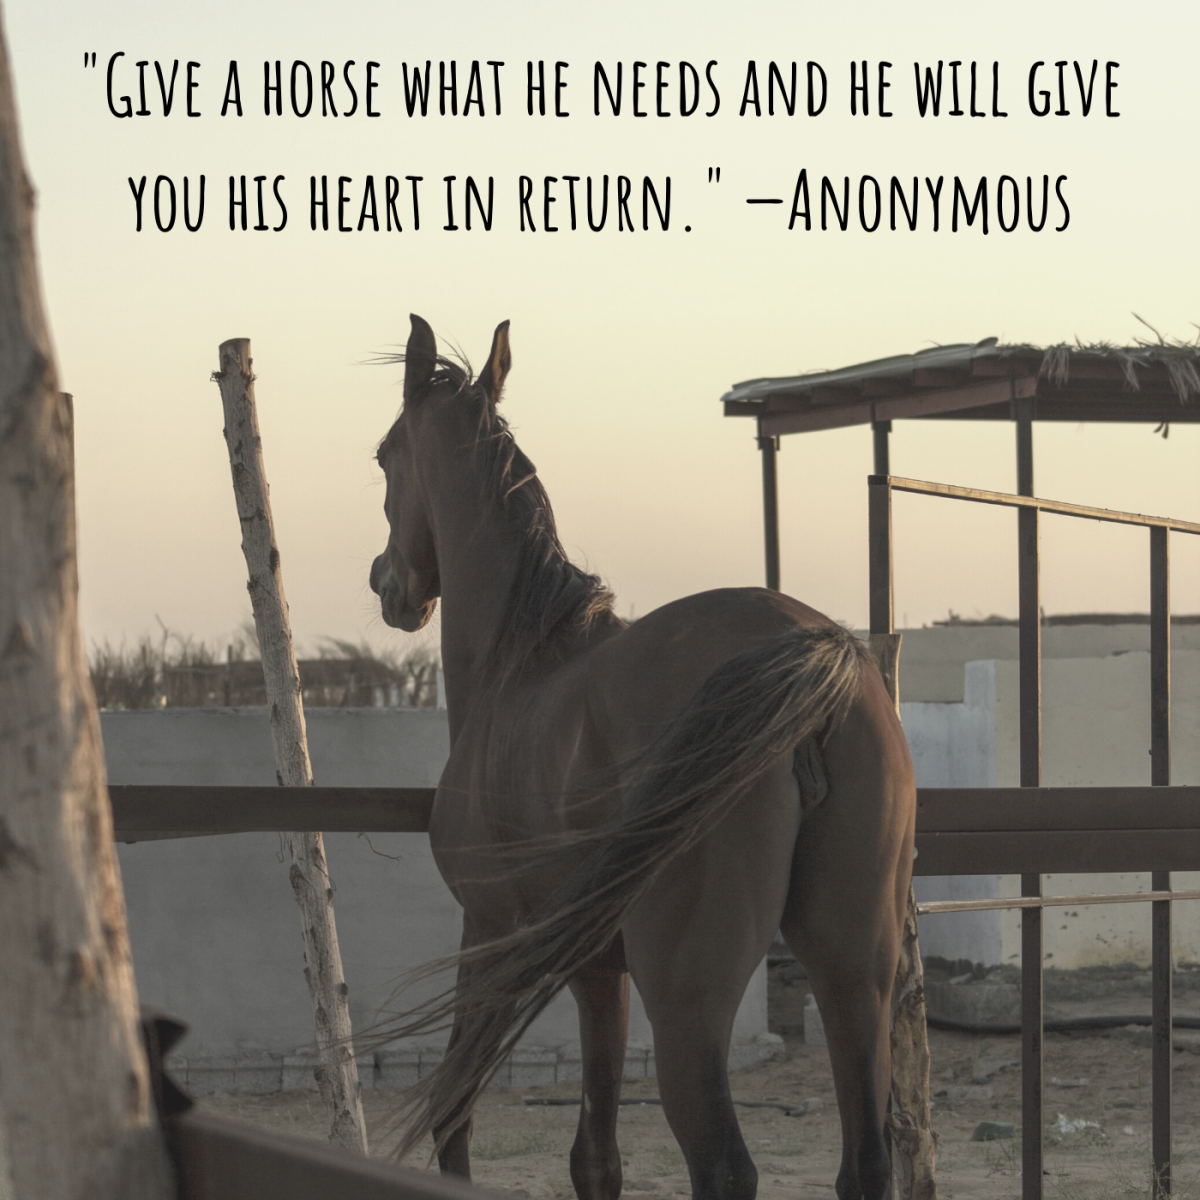 """Give a horse what he needs and he will give you his heart in return."" —Anonymous"